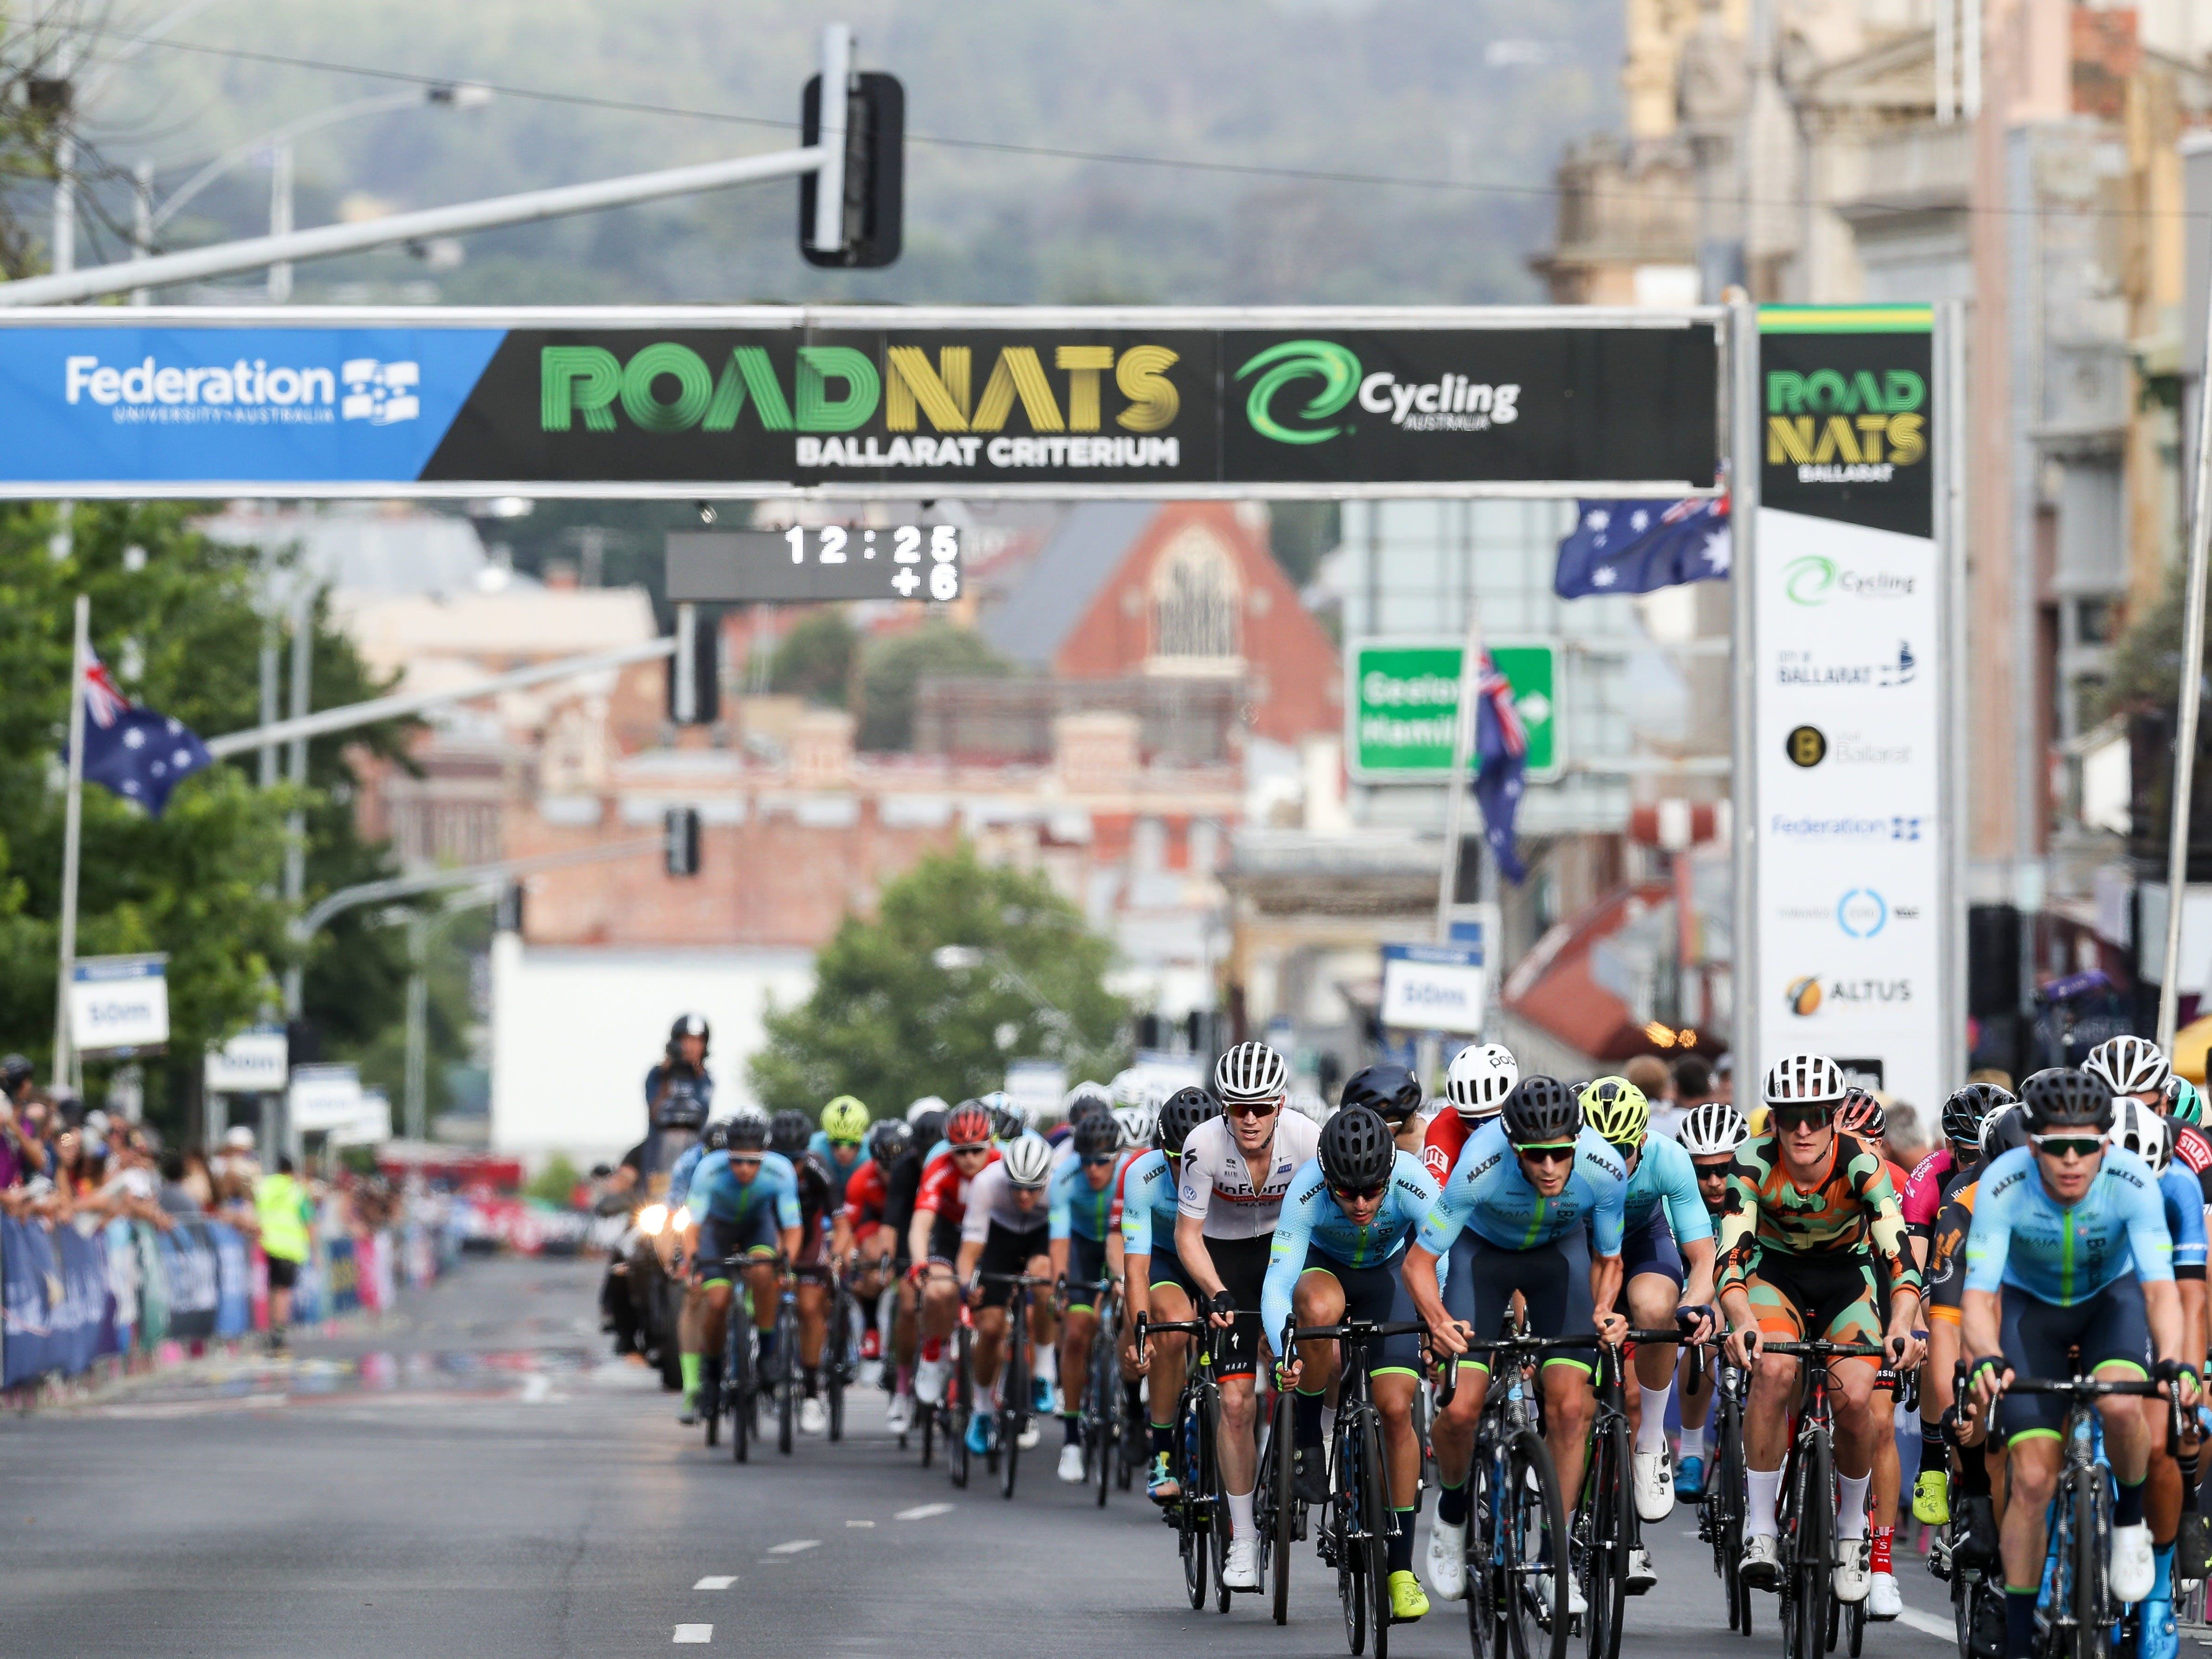 Federation University Criterium National Championships - Ballarat - Redcliffe Tourism